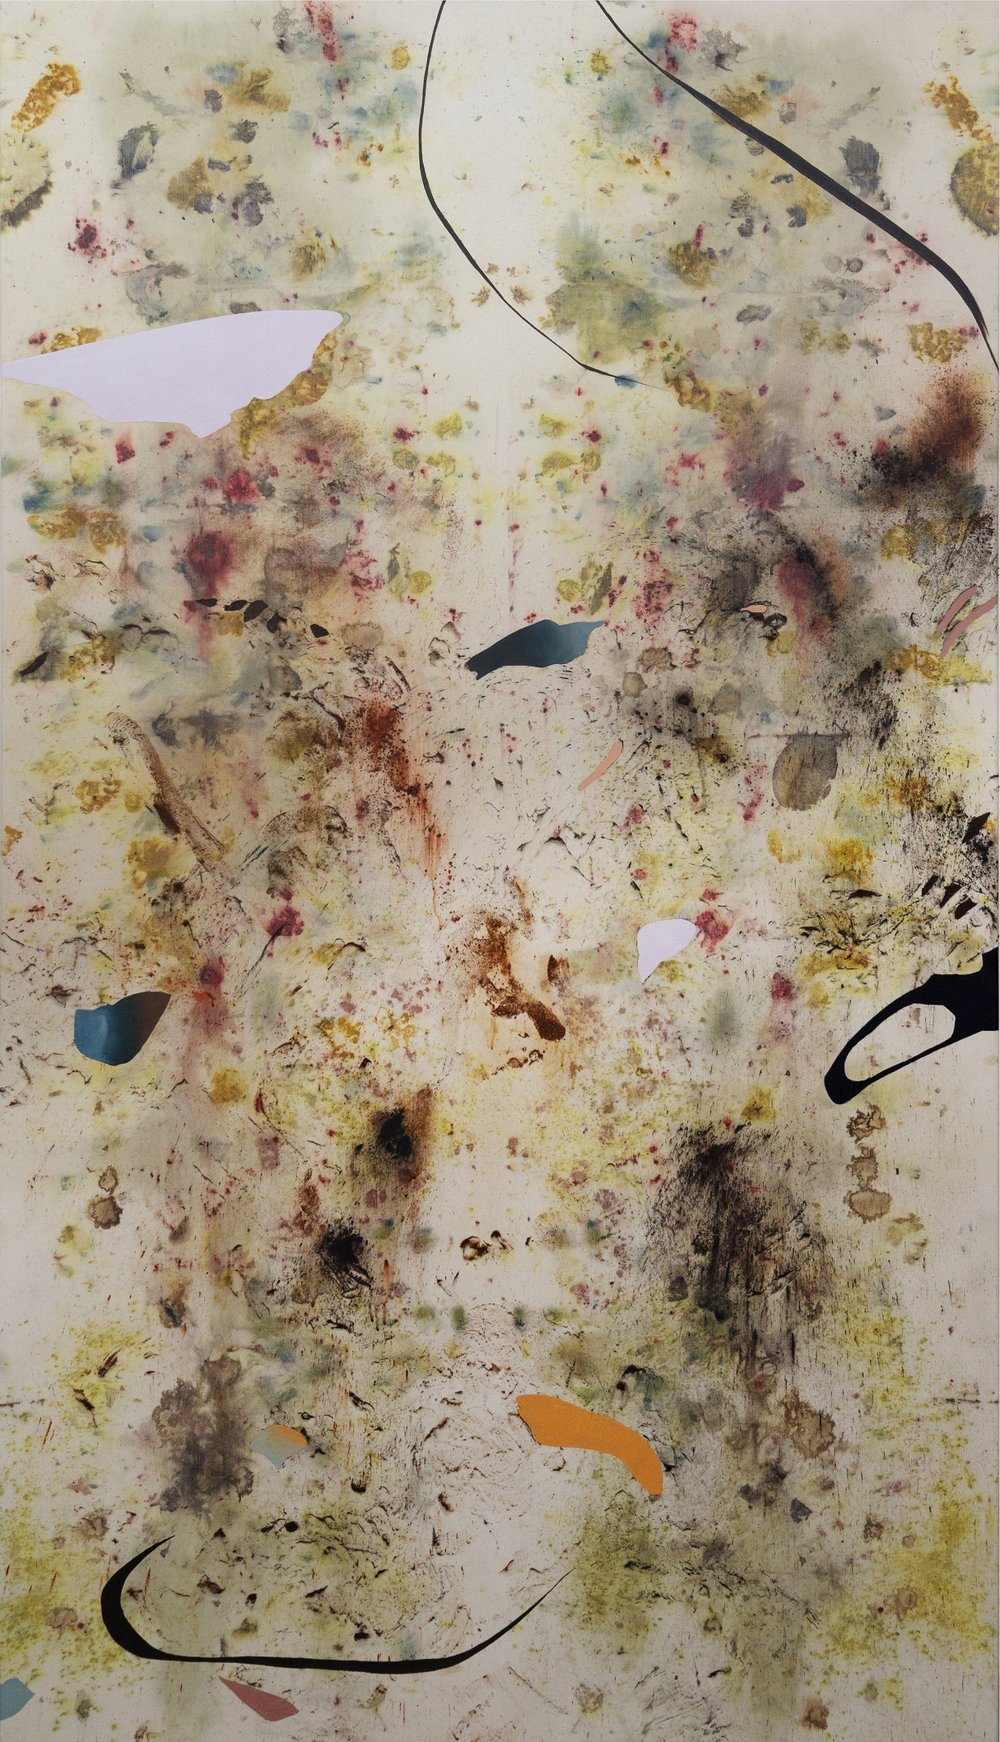 Ghosts of the Schrebergärten, Cold Wax Medium, Oil, Raw Pigments, Sand, Red Earth, Various Plant Materials (including Acorns, Sumac Berries, Oak Leaves, Onion Skins, Tansy Flower, Madder Root, and Wildflowers) on Canvas, 81.5x45 inches, 2018